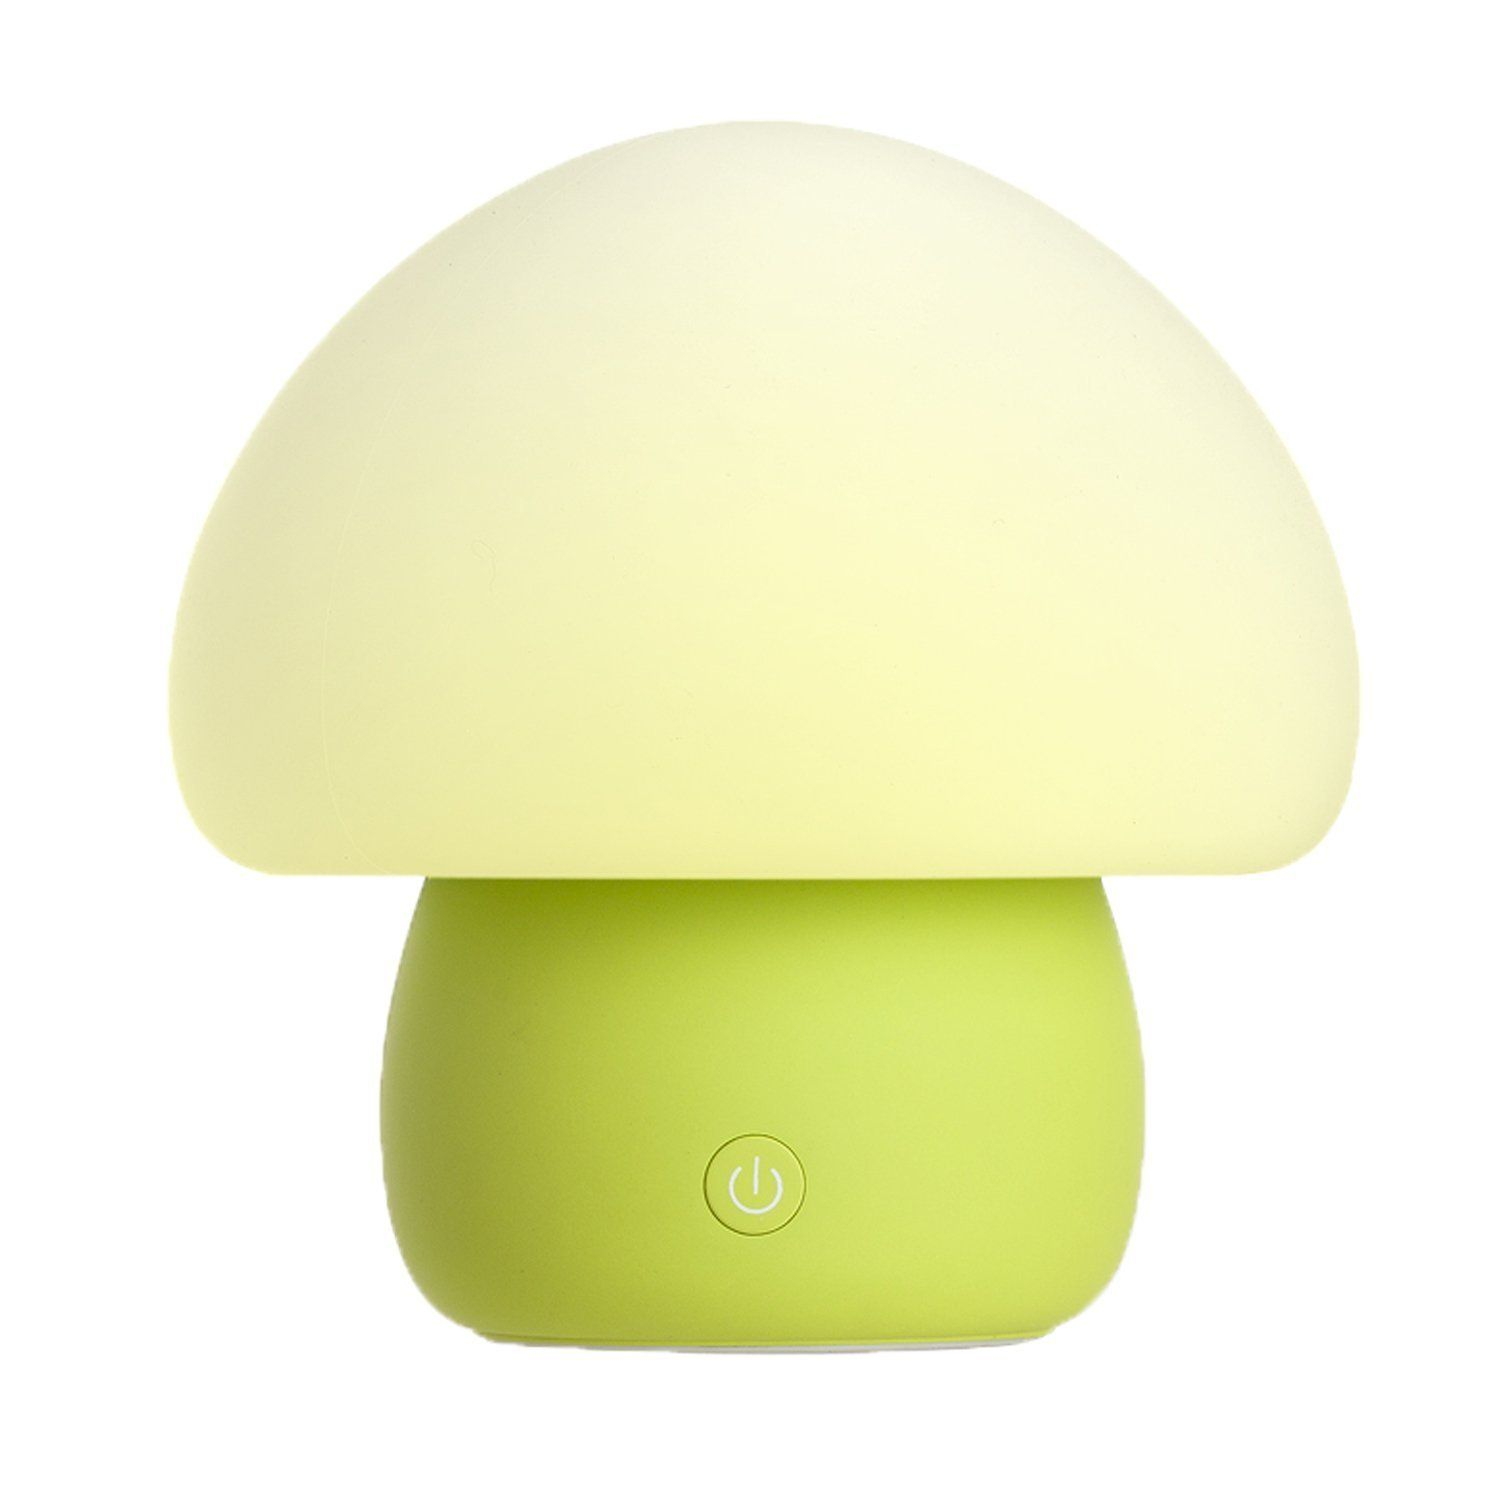 Exceptional Amazon.com: Emoi Multicolor LED Baby Night Light, Portable Silicone Cute  Mushroom Nursery